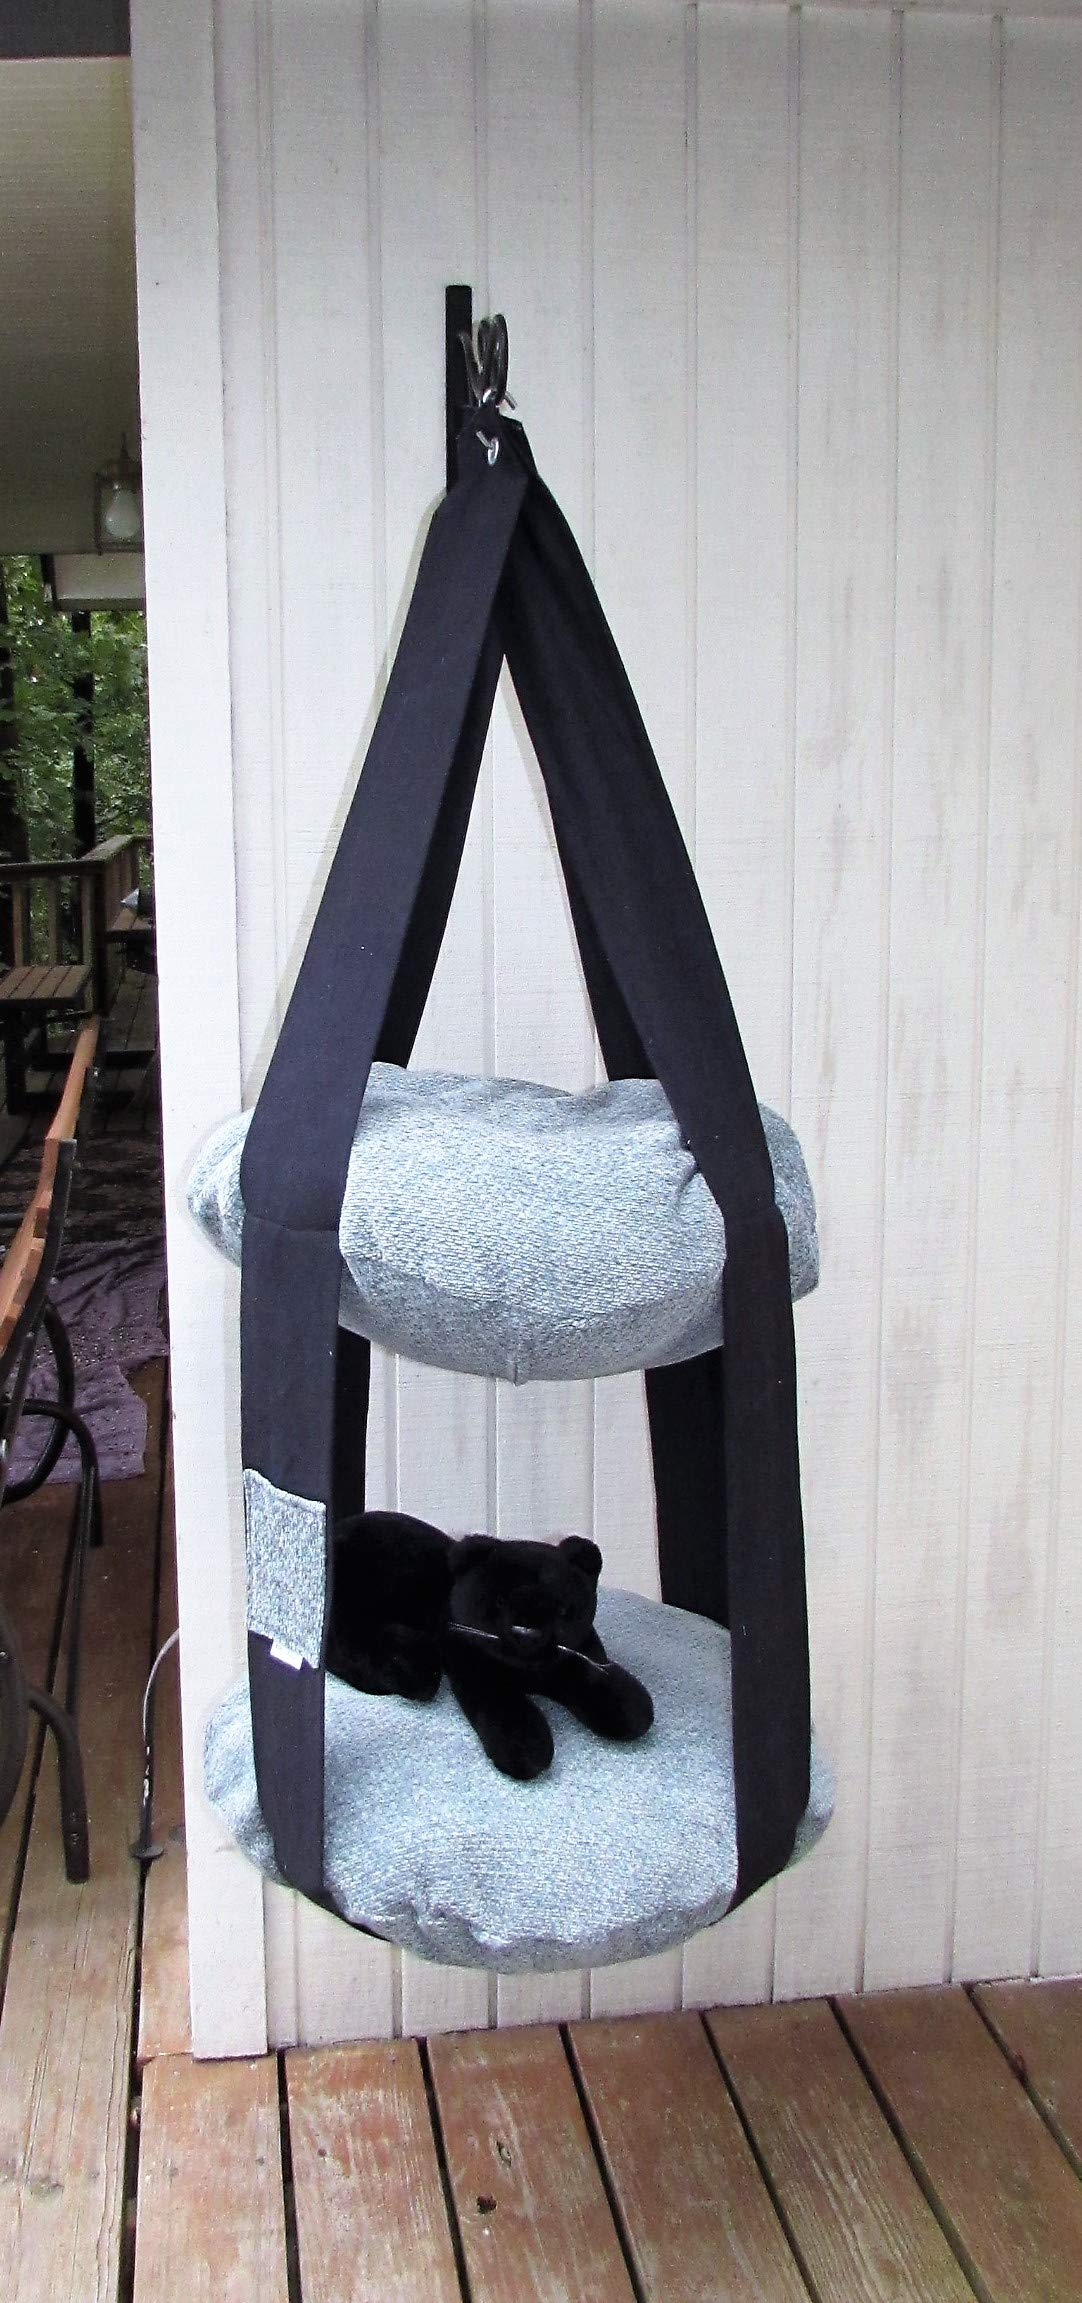 Cat Bed Charcoal & Aqua Double Hanging Cat Bed, Kitty Cloud Cat Bed, Pet Furniture, Cat Tree